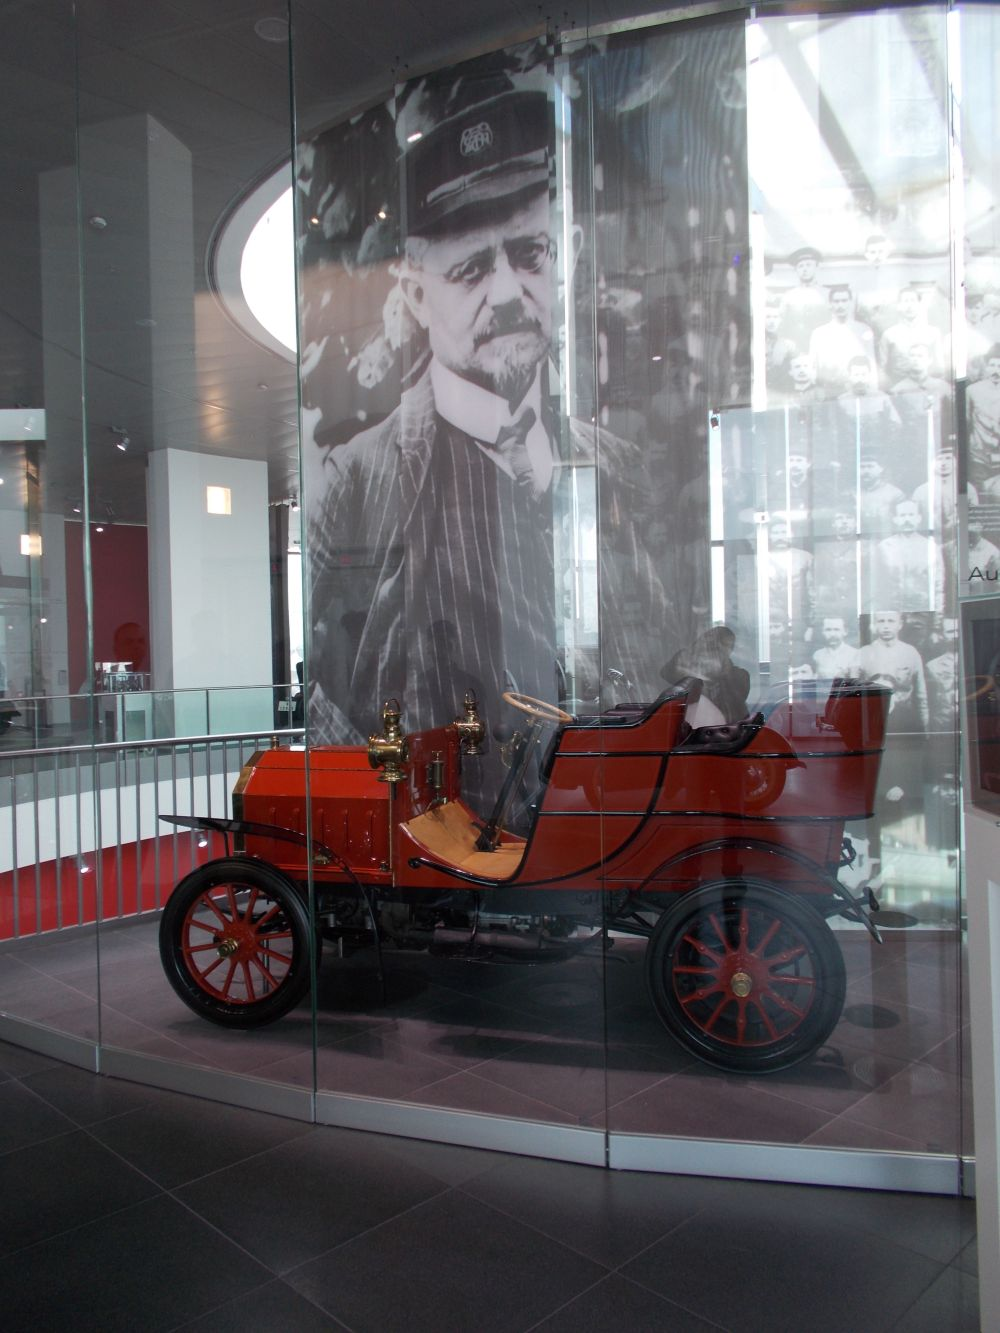 AudiMuseum-AugustHorch1